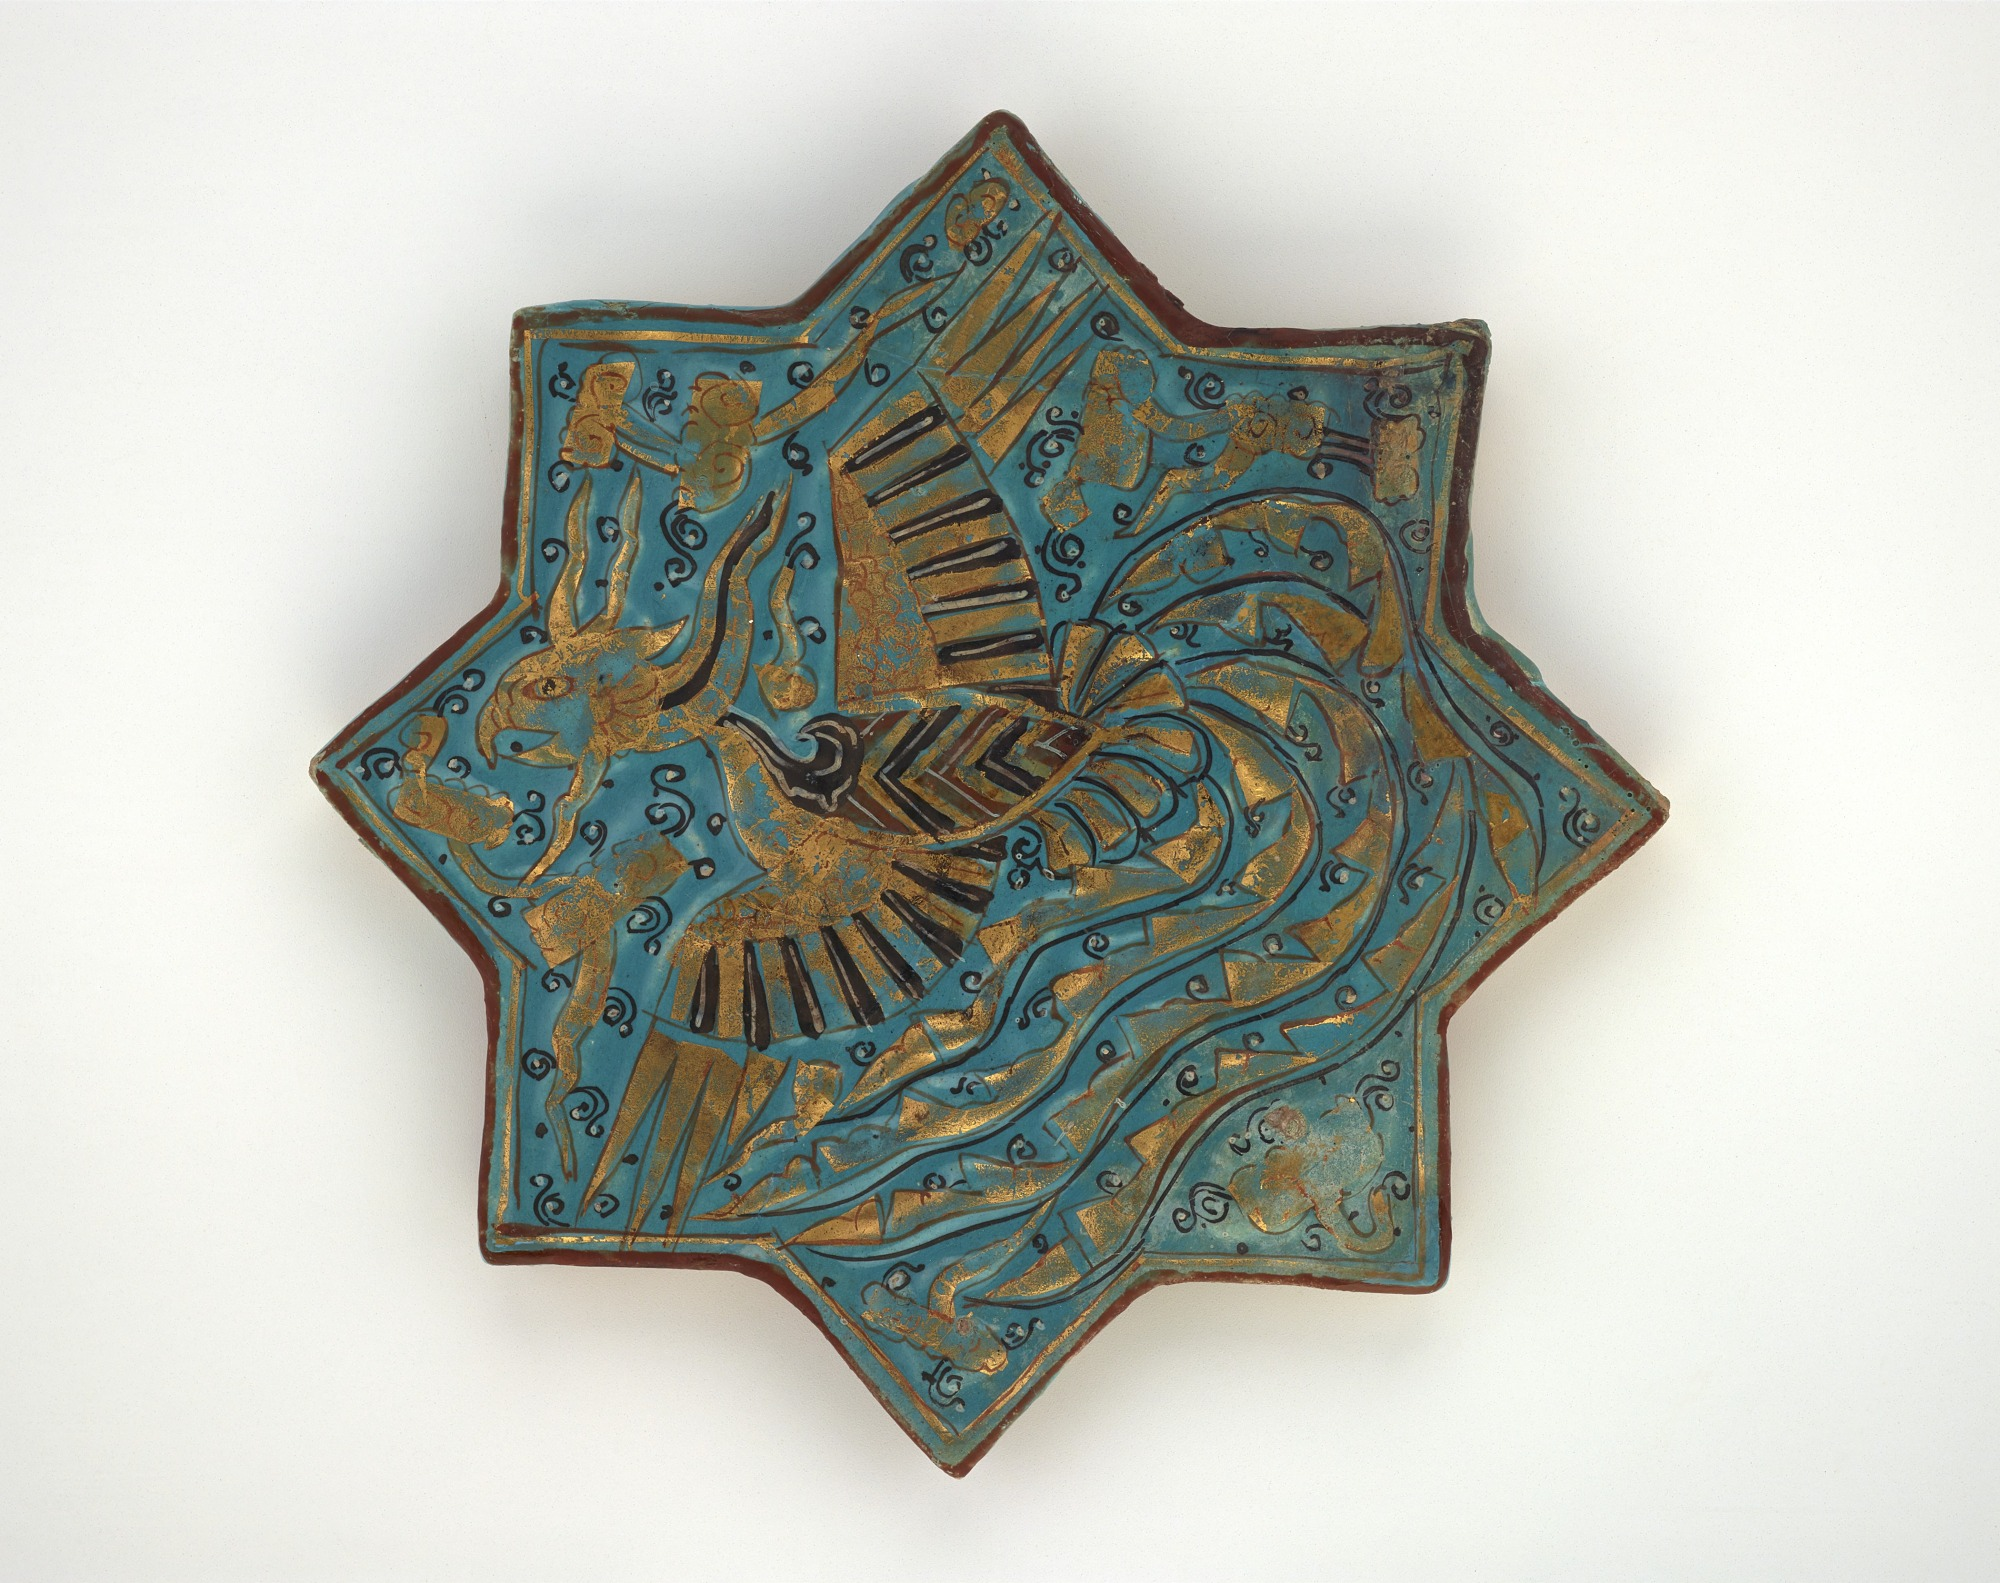 front: Star tile with phoenix